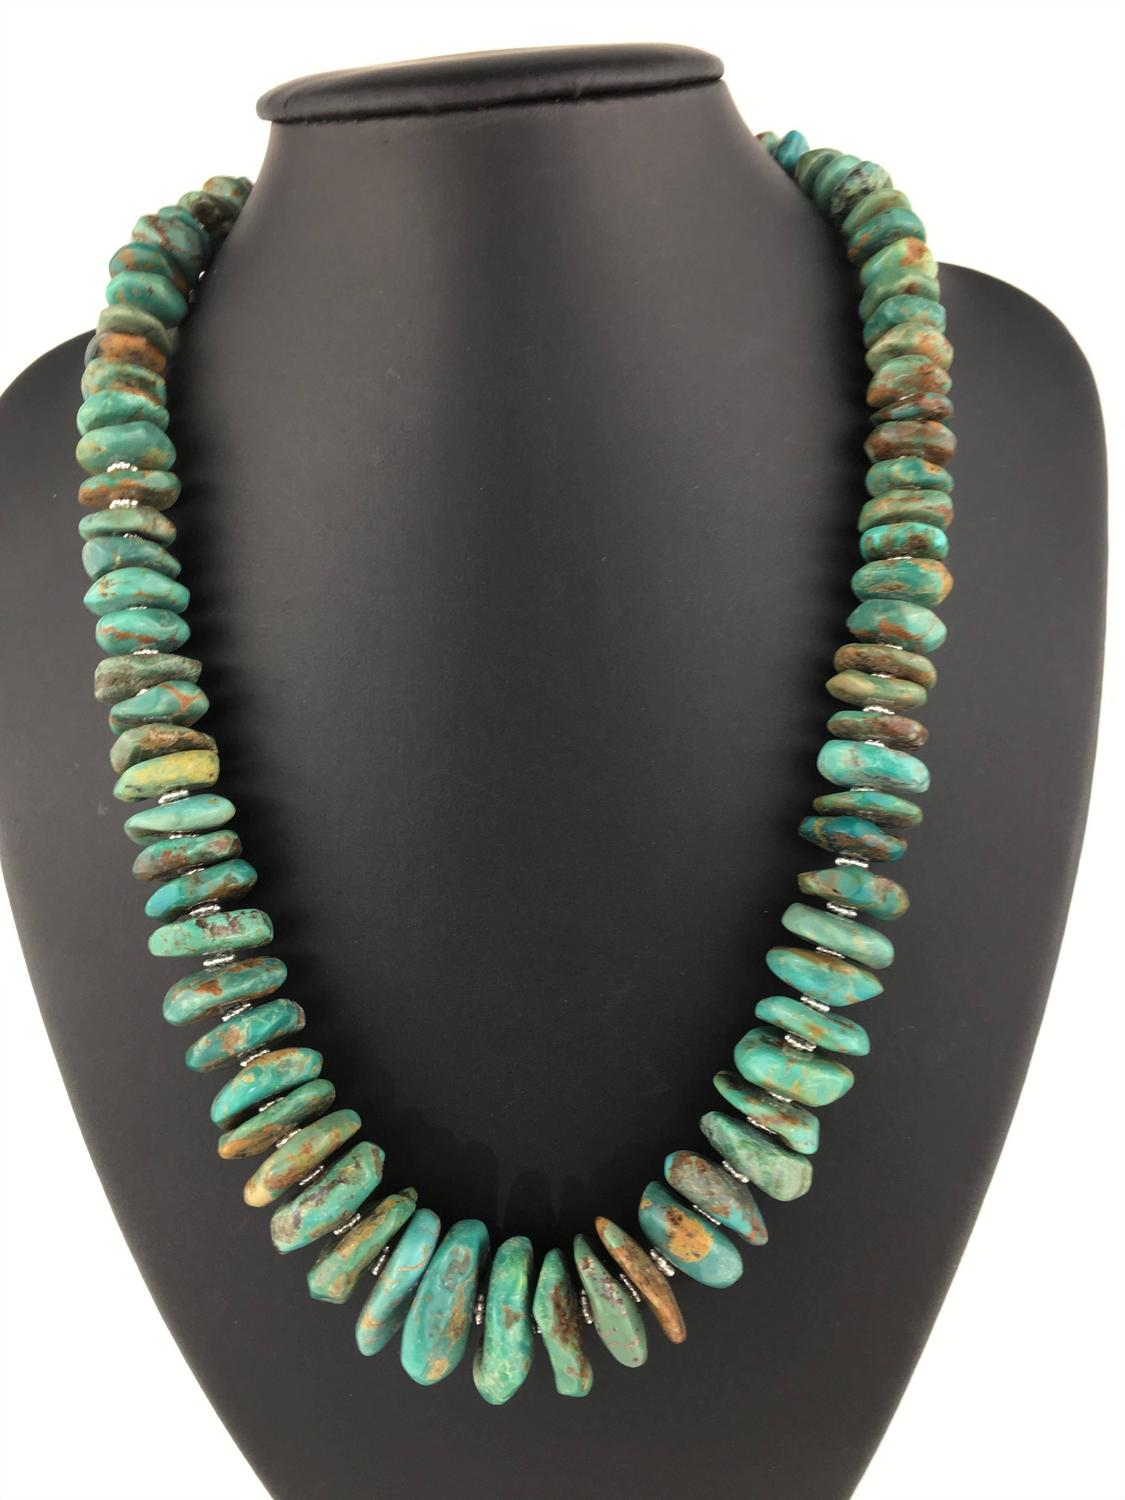 Graduated Natural Turquoise Rondel Necklace For Sale At